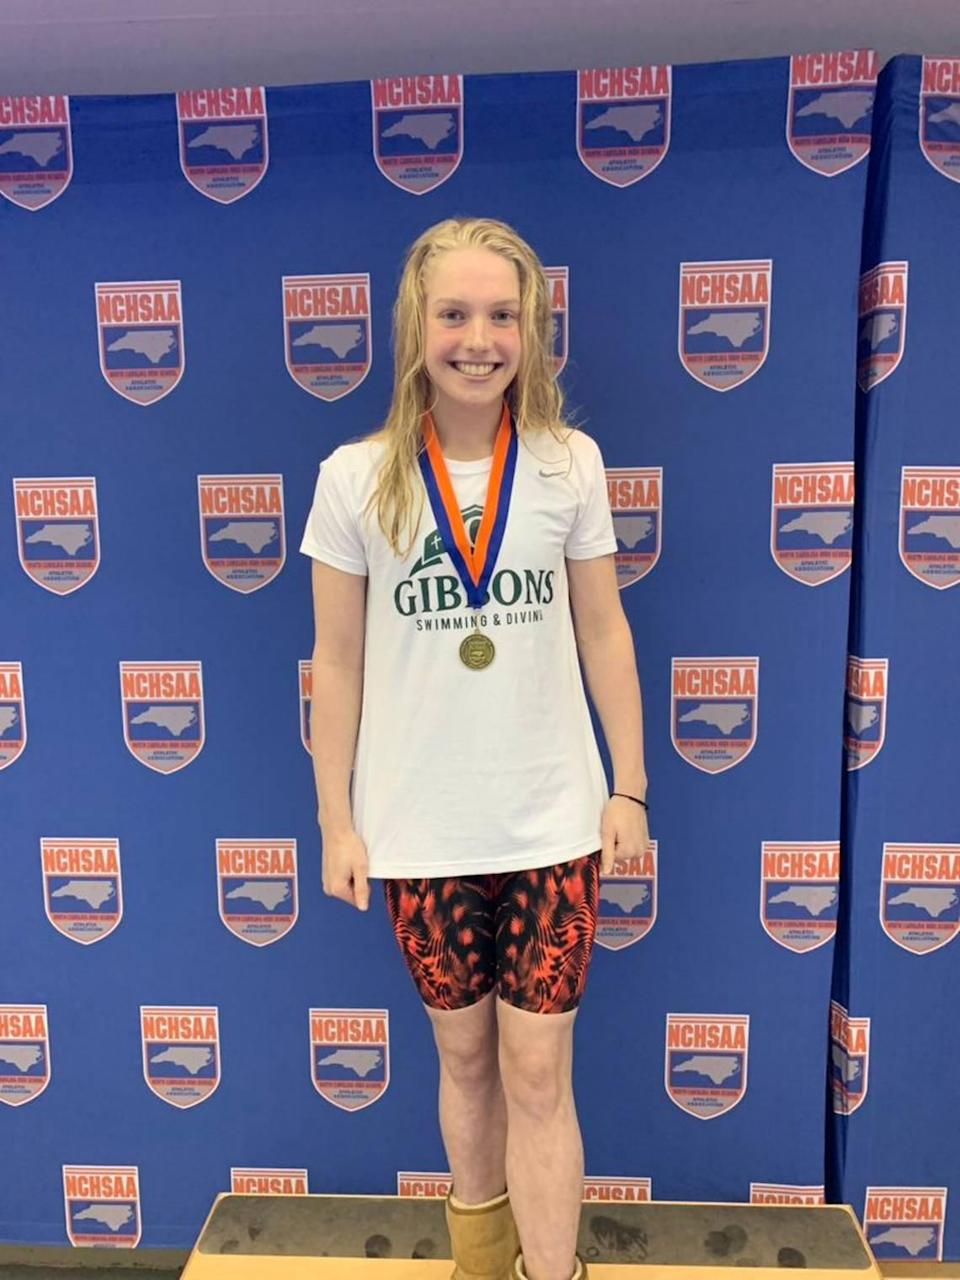 Claire Curzan, pictured in 2019 at age 14, has won multiple individual events at the N.C. High School Athletic Association state championships while competing for Raleigh's Cardinal Gibbons. At 16, she will be one of the youngest Olympians competing for the USA in Tokyo in July.